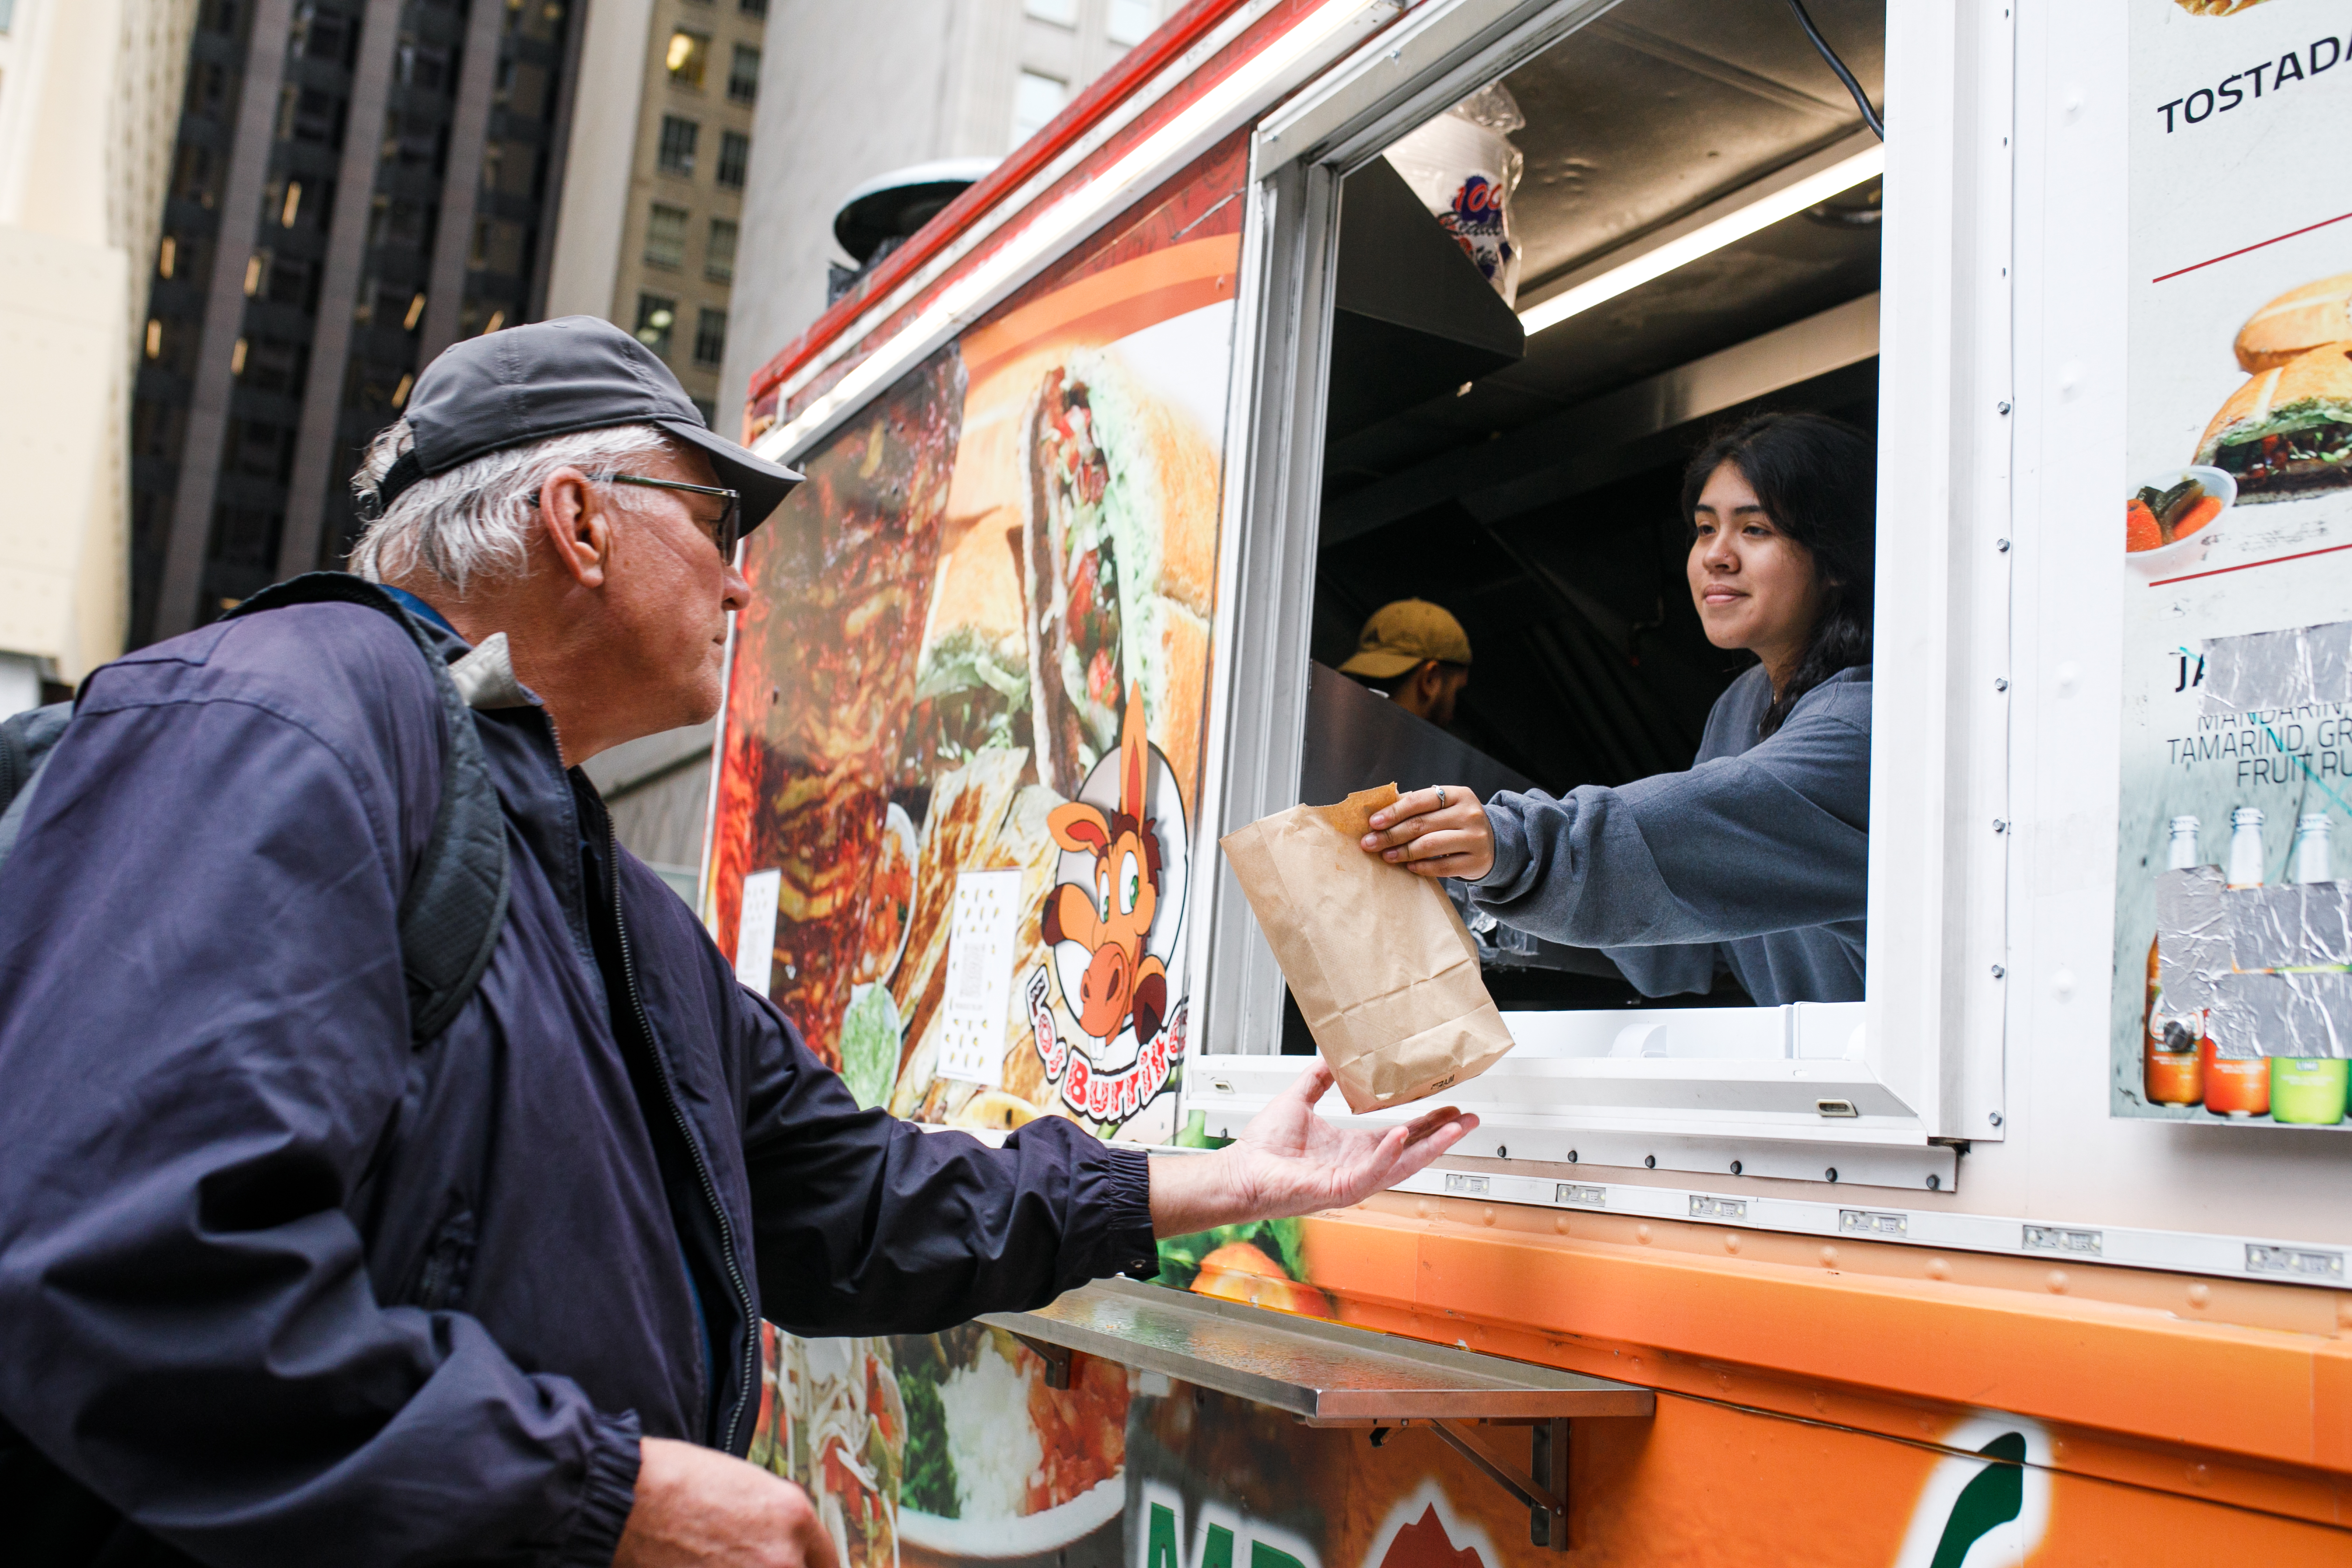 Mr. Quiles food truck serves up fresh tacos, quesadillas and burritos at the Daley Plaza's Chicago Food Truck Fest. Gabi Hernandez serves a customer at the Mr. Quiles food truck at Daley Plaza, Friday afternoon, Oct. 15, 2021. Mark Capapas/Sun-Times